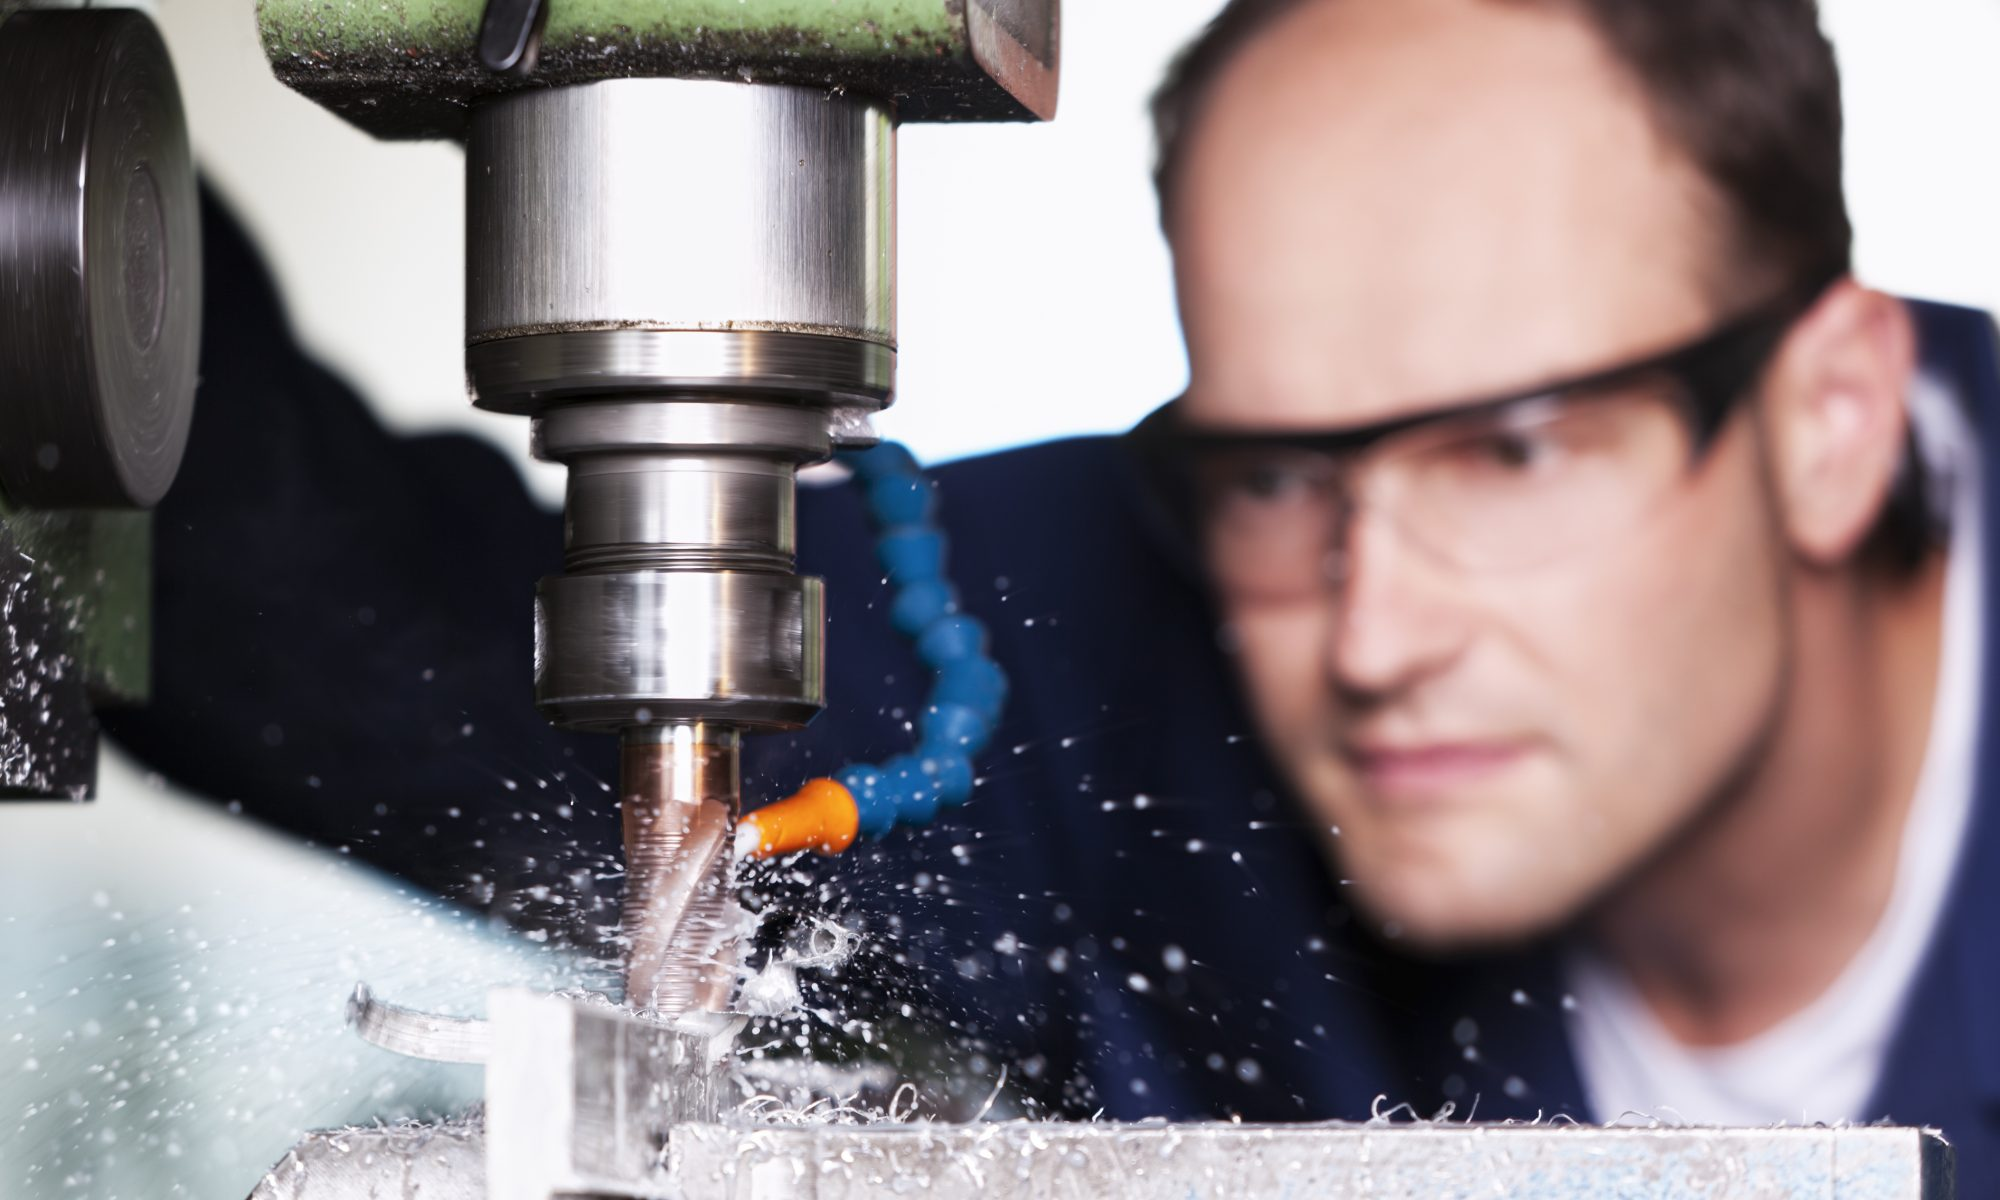 Man wearing safety glasses closely watching milling machine drilling into a block of metal